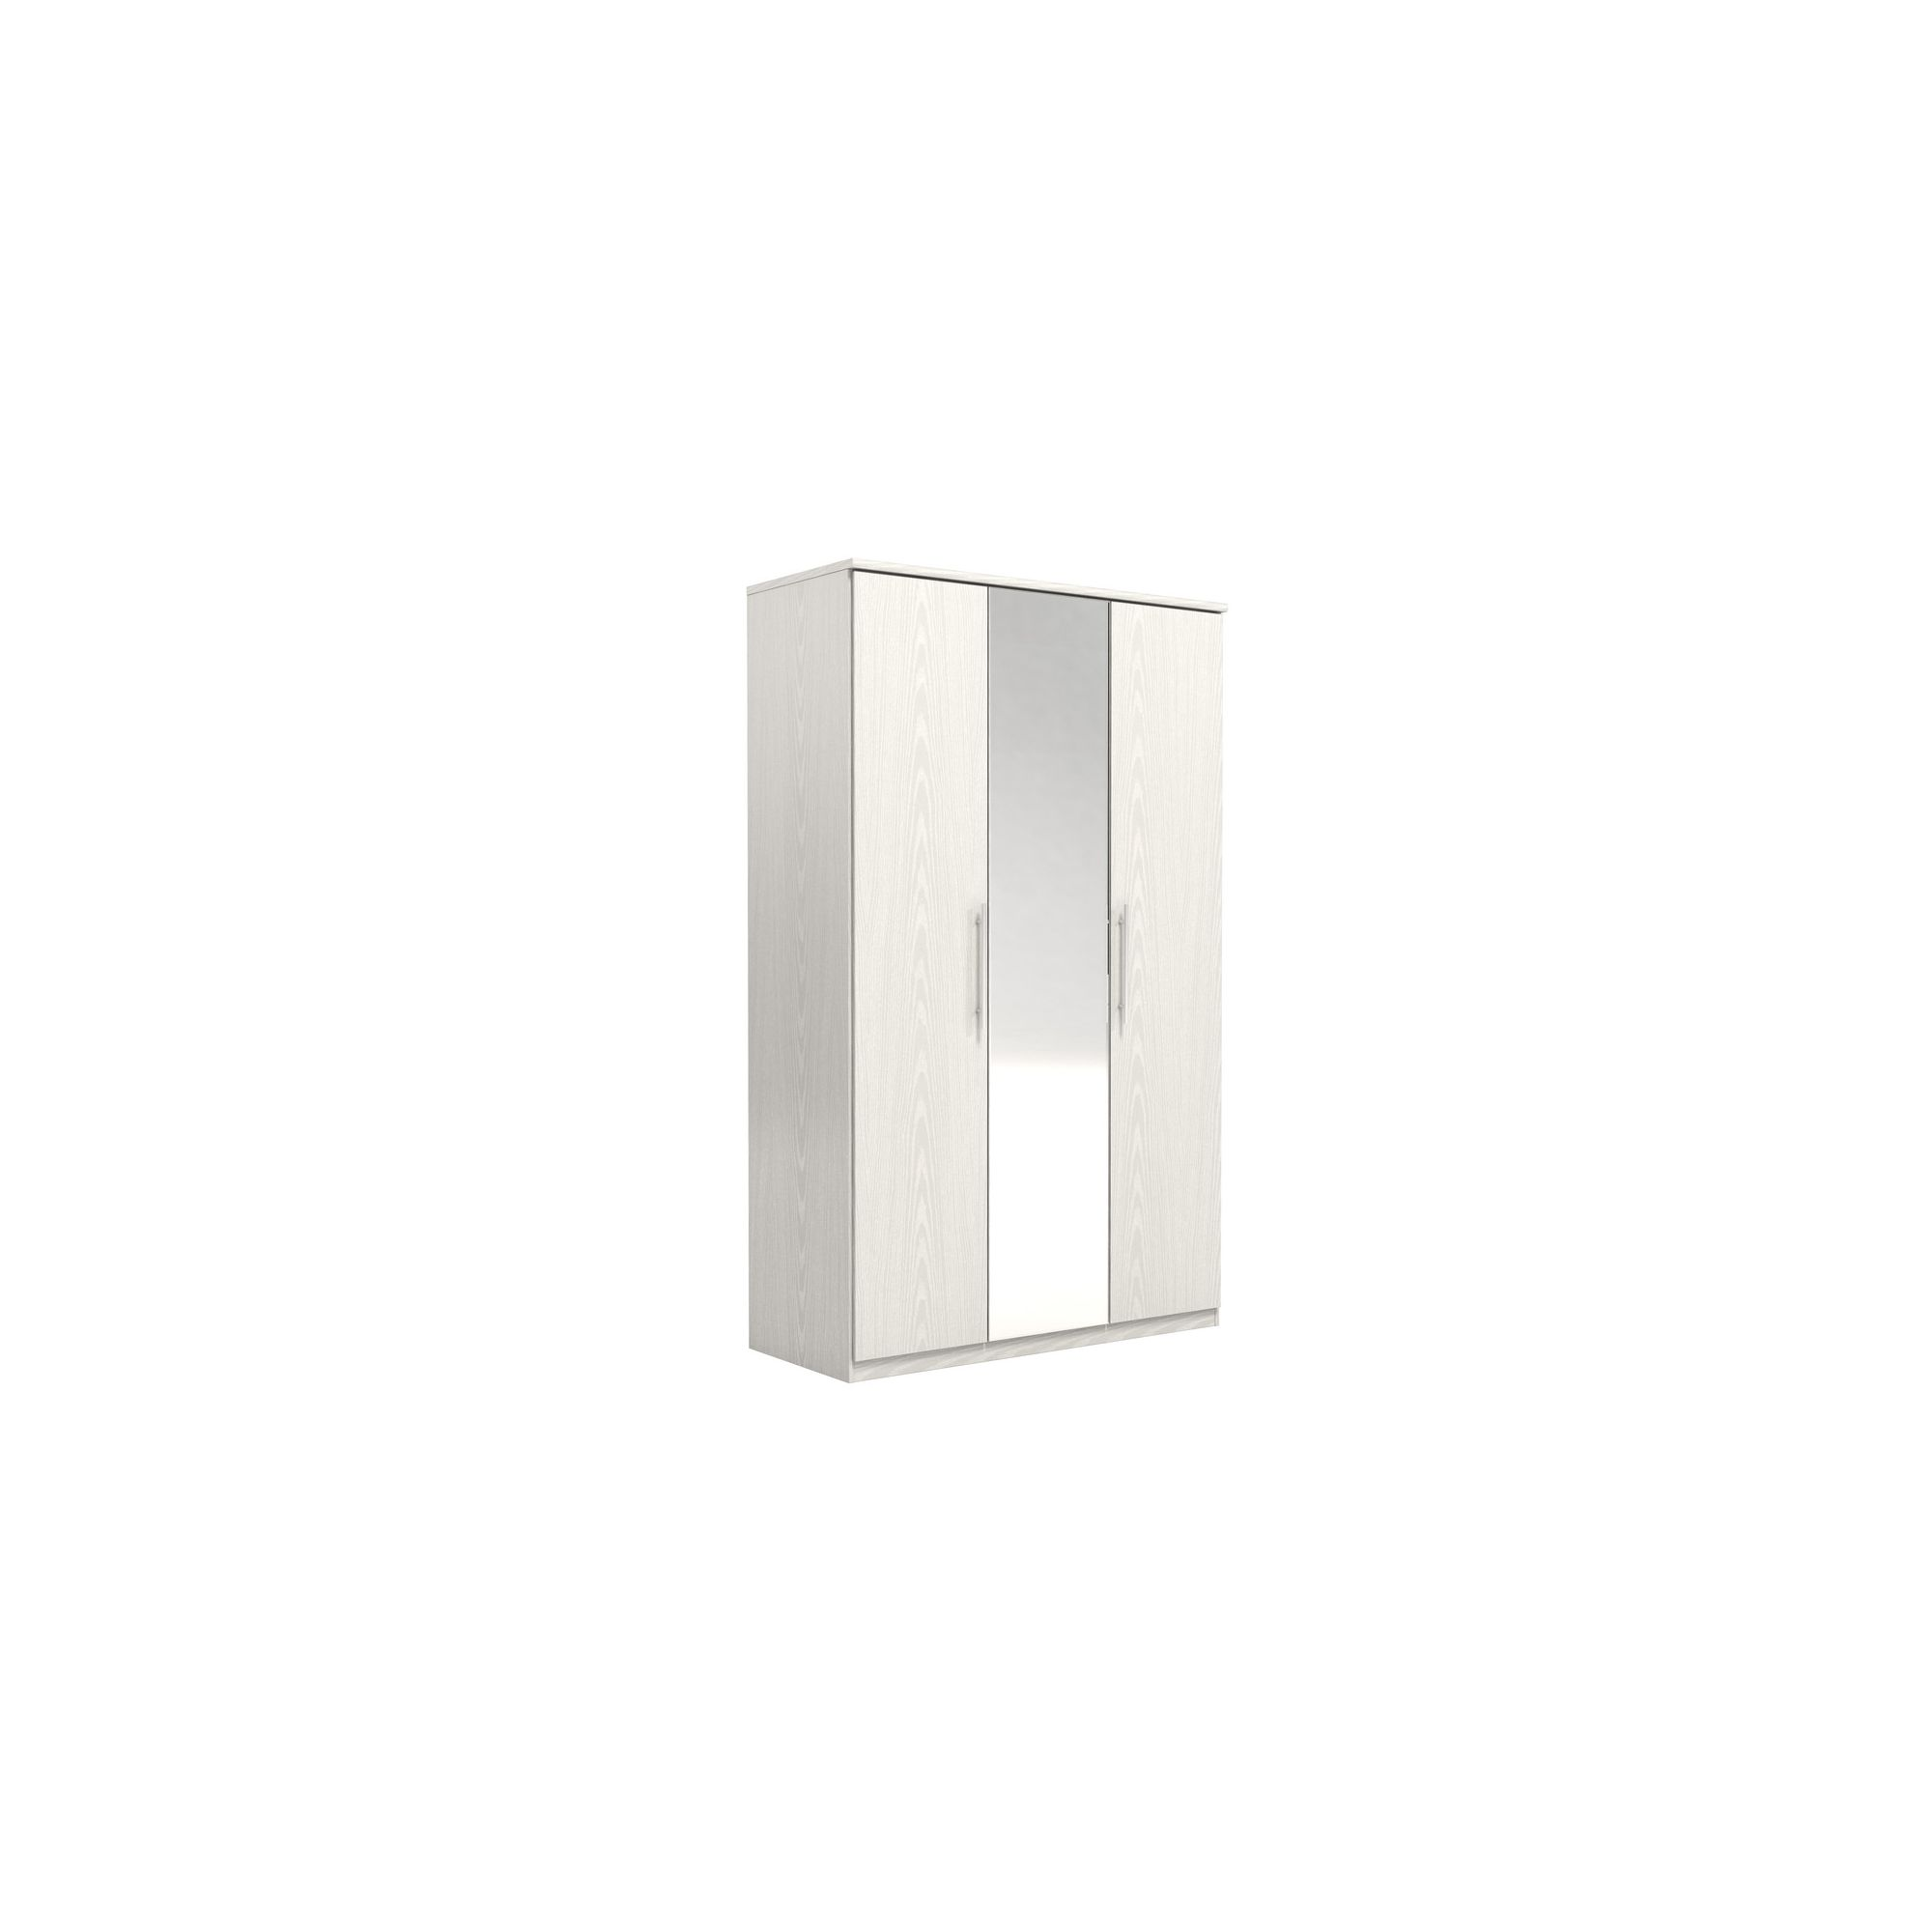 Urbane Designs Prague 3 Door Wardrobe - White at Tesco Direct